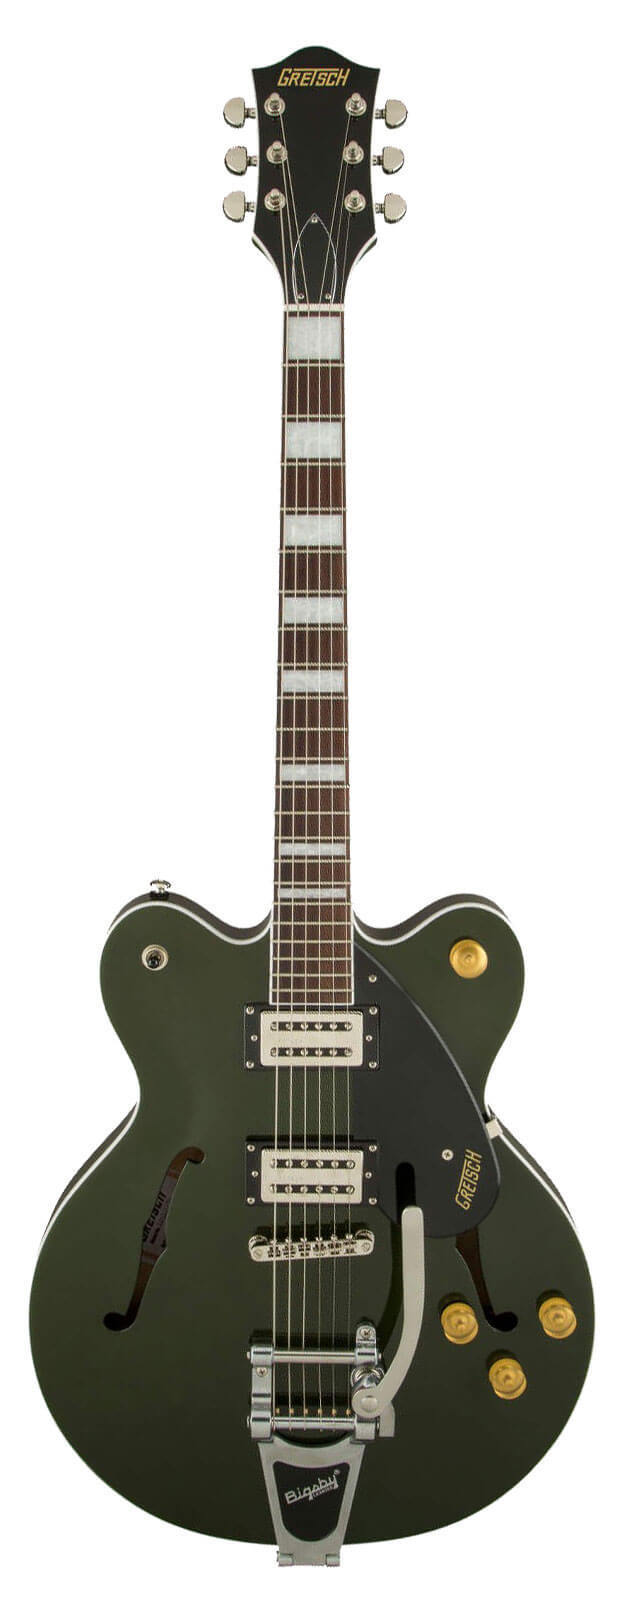 Gretsch G2622T Streamliner electric guitar